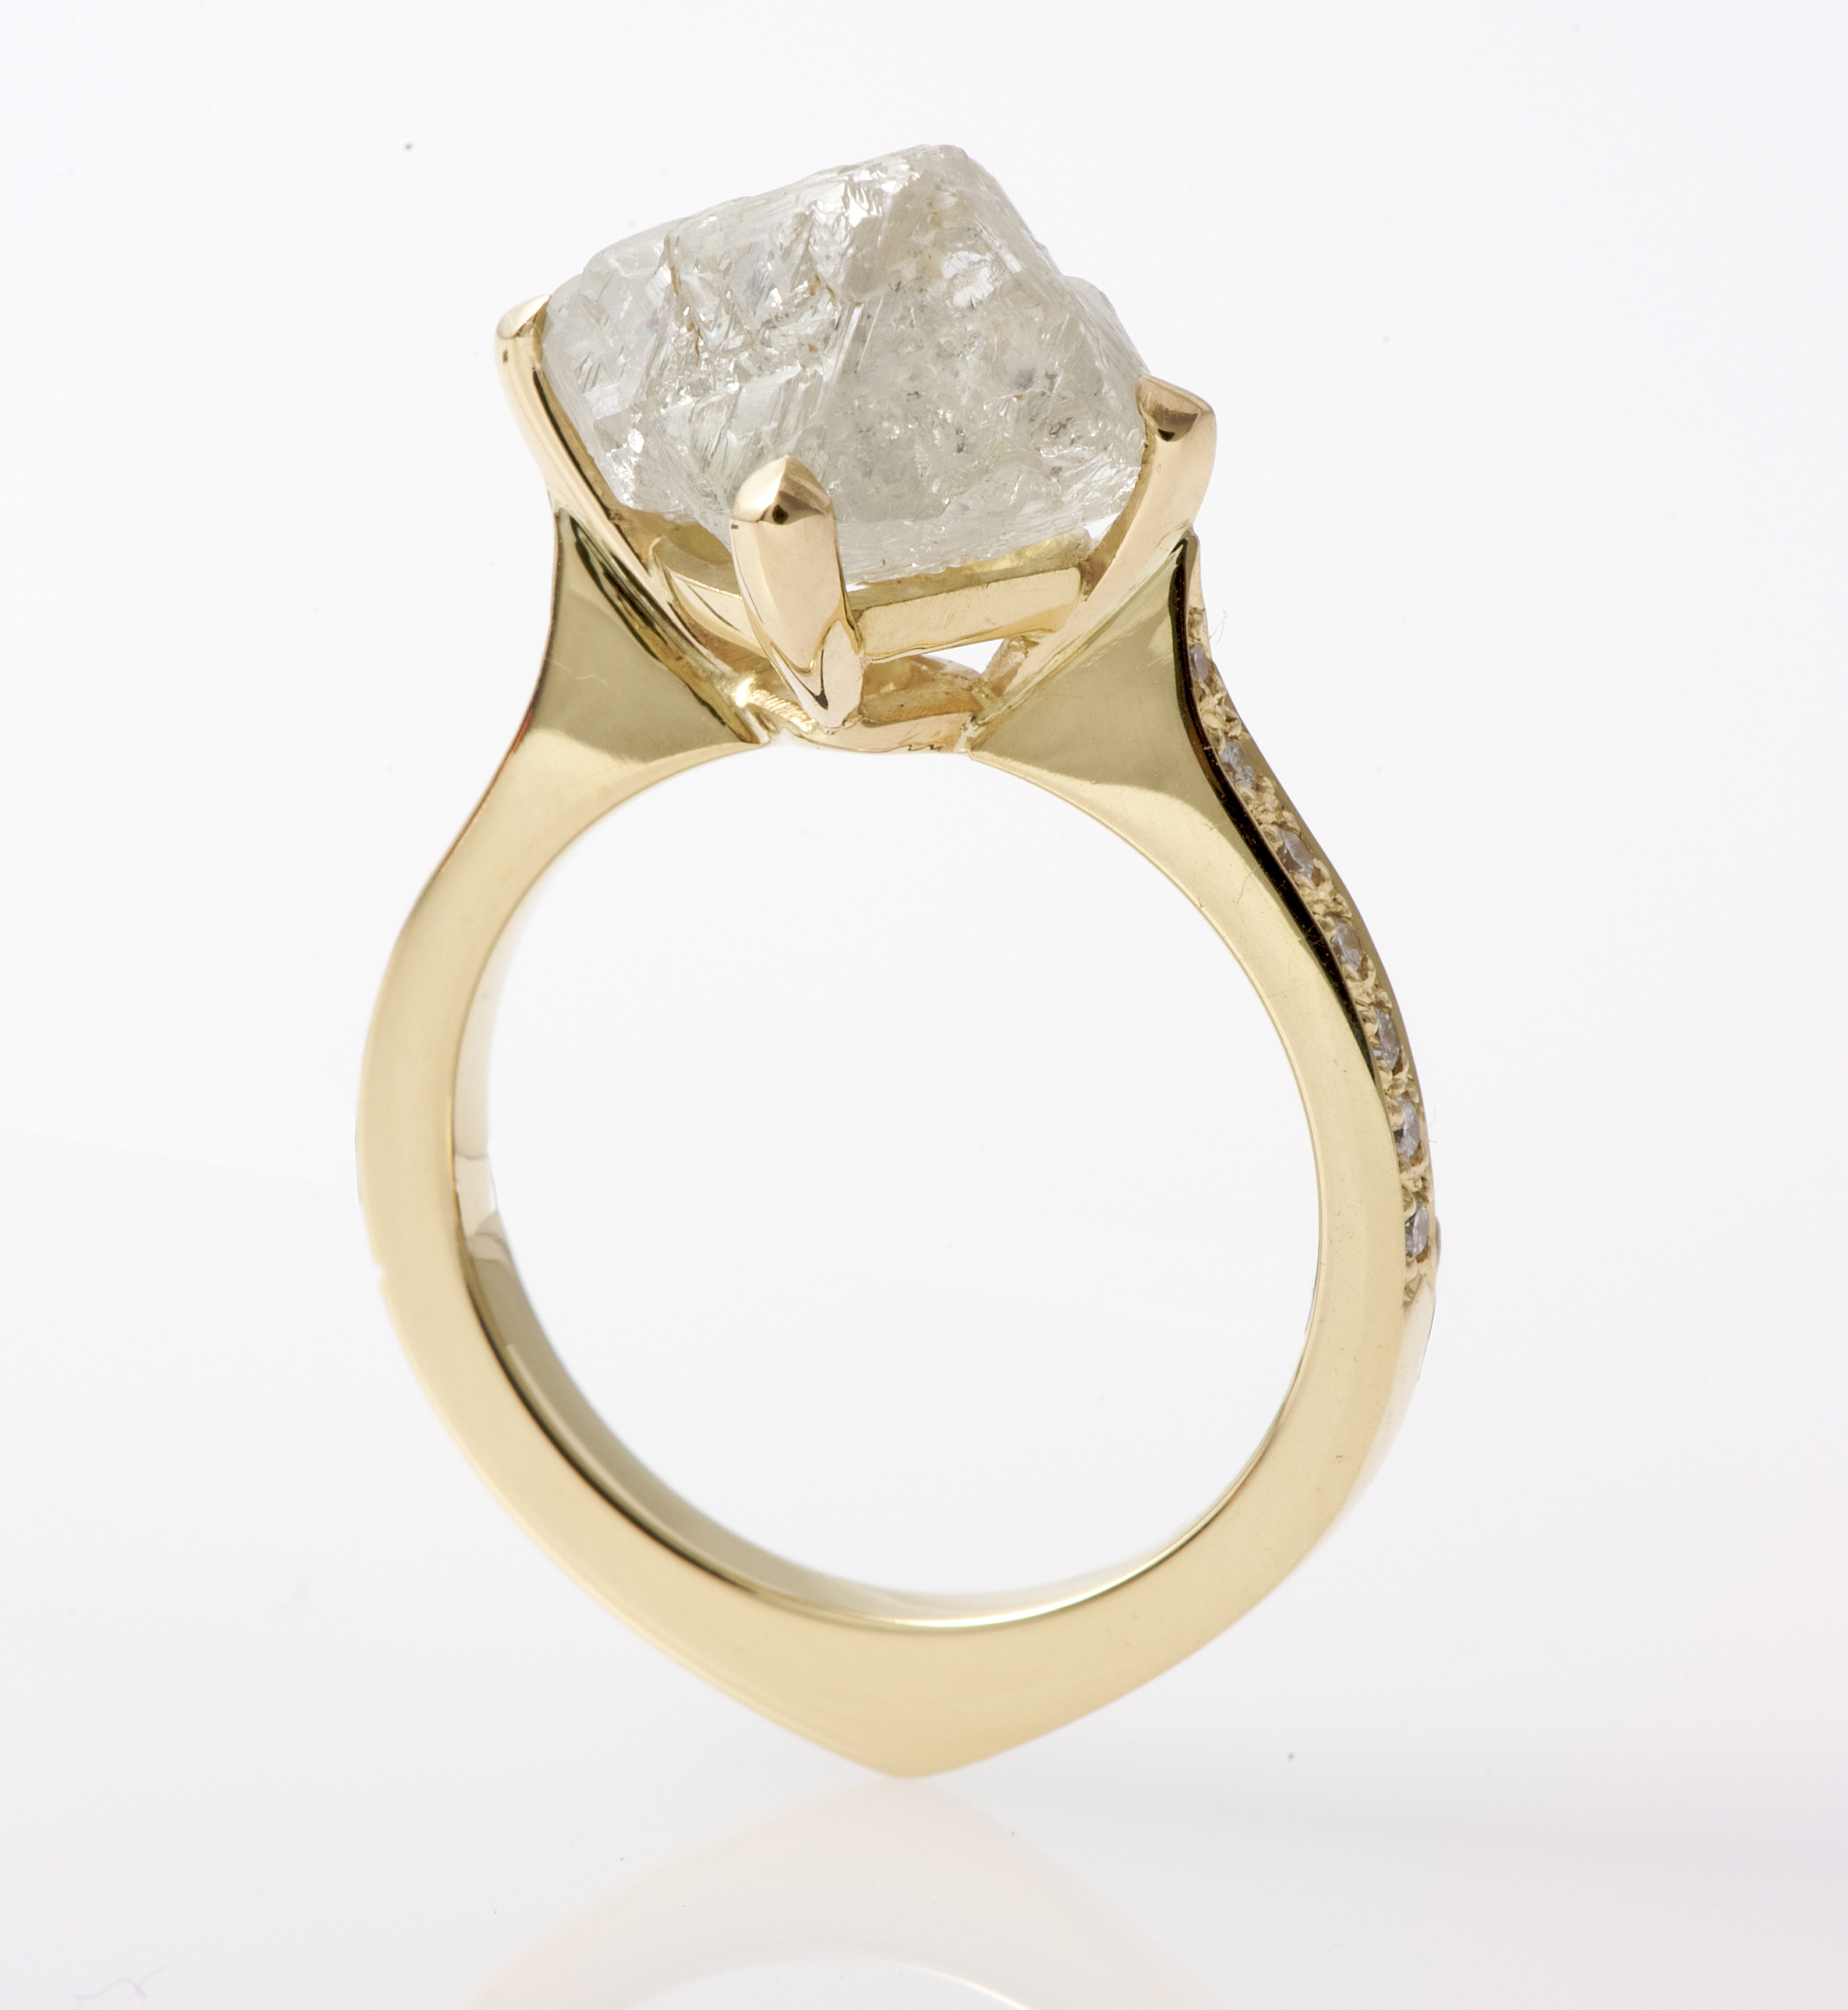 18ct Yellow Gold Bepsoke Ring